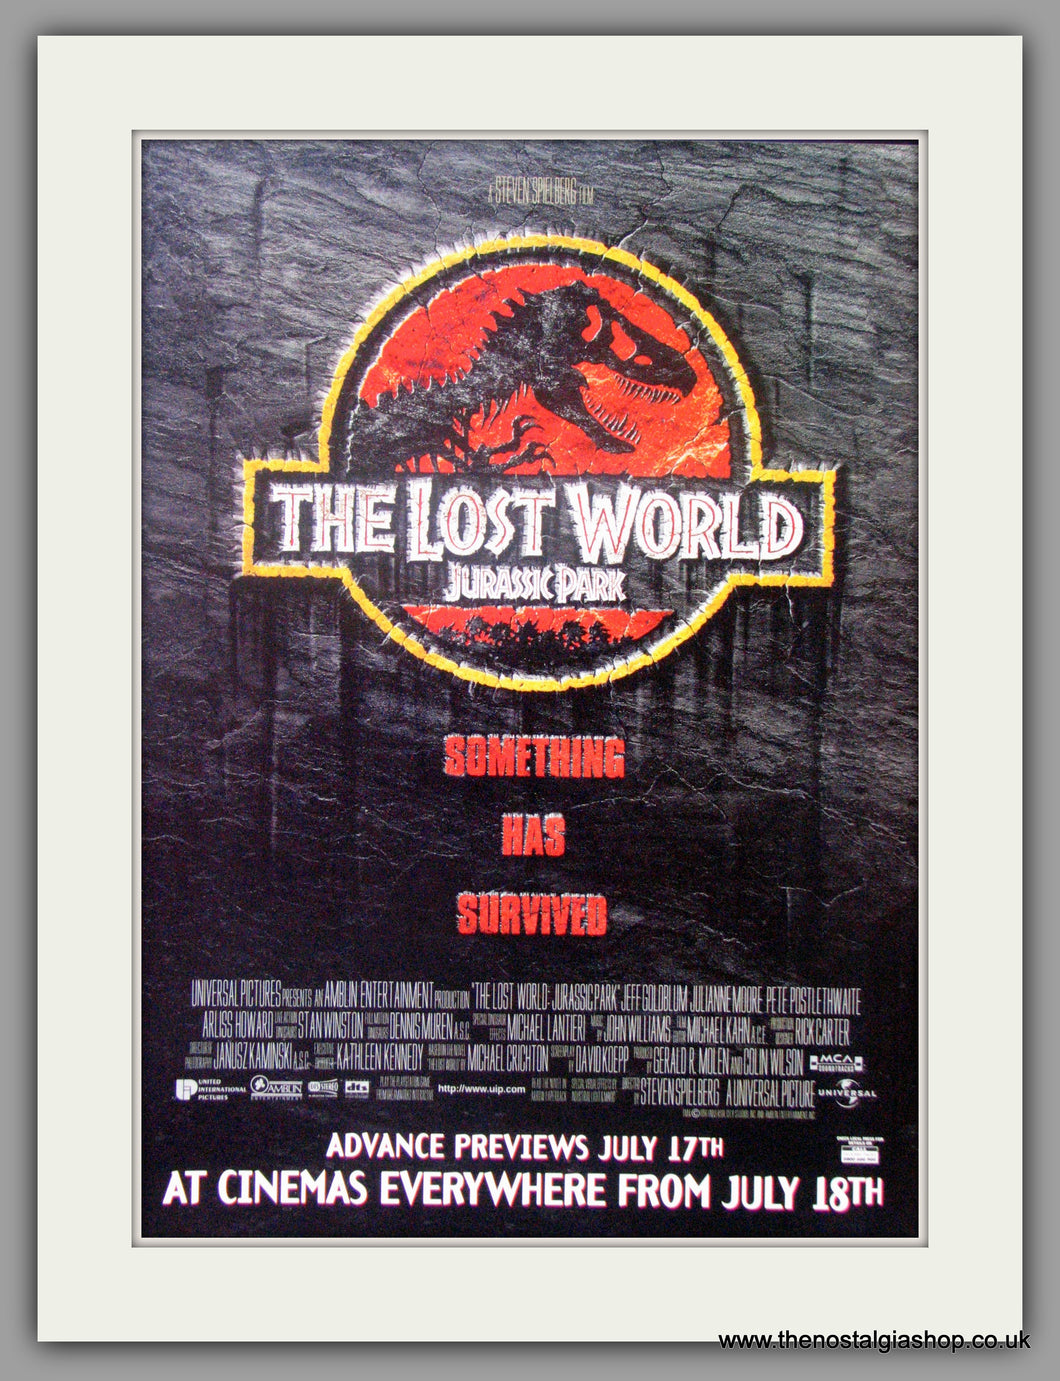 Lost World (The) Jurassic Park. Vintage Advert 1997 (ref AD51145)